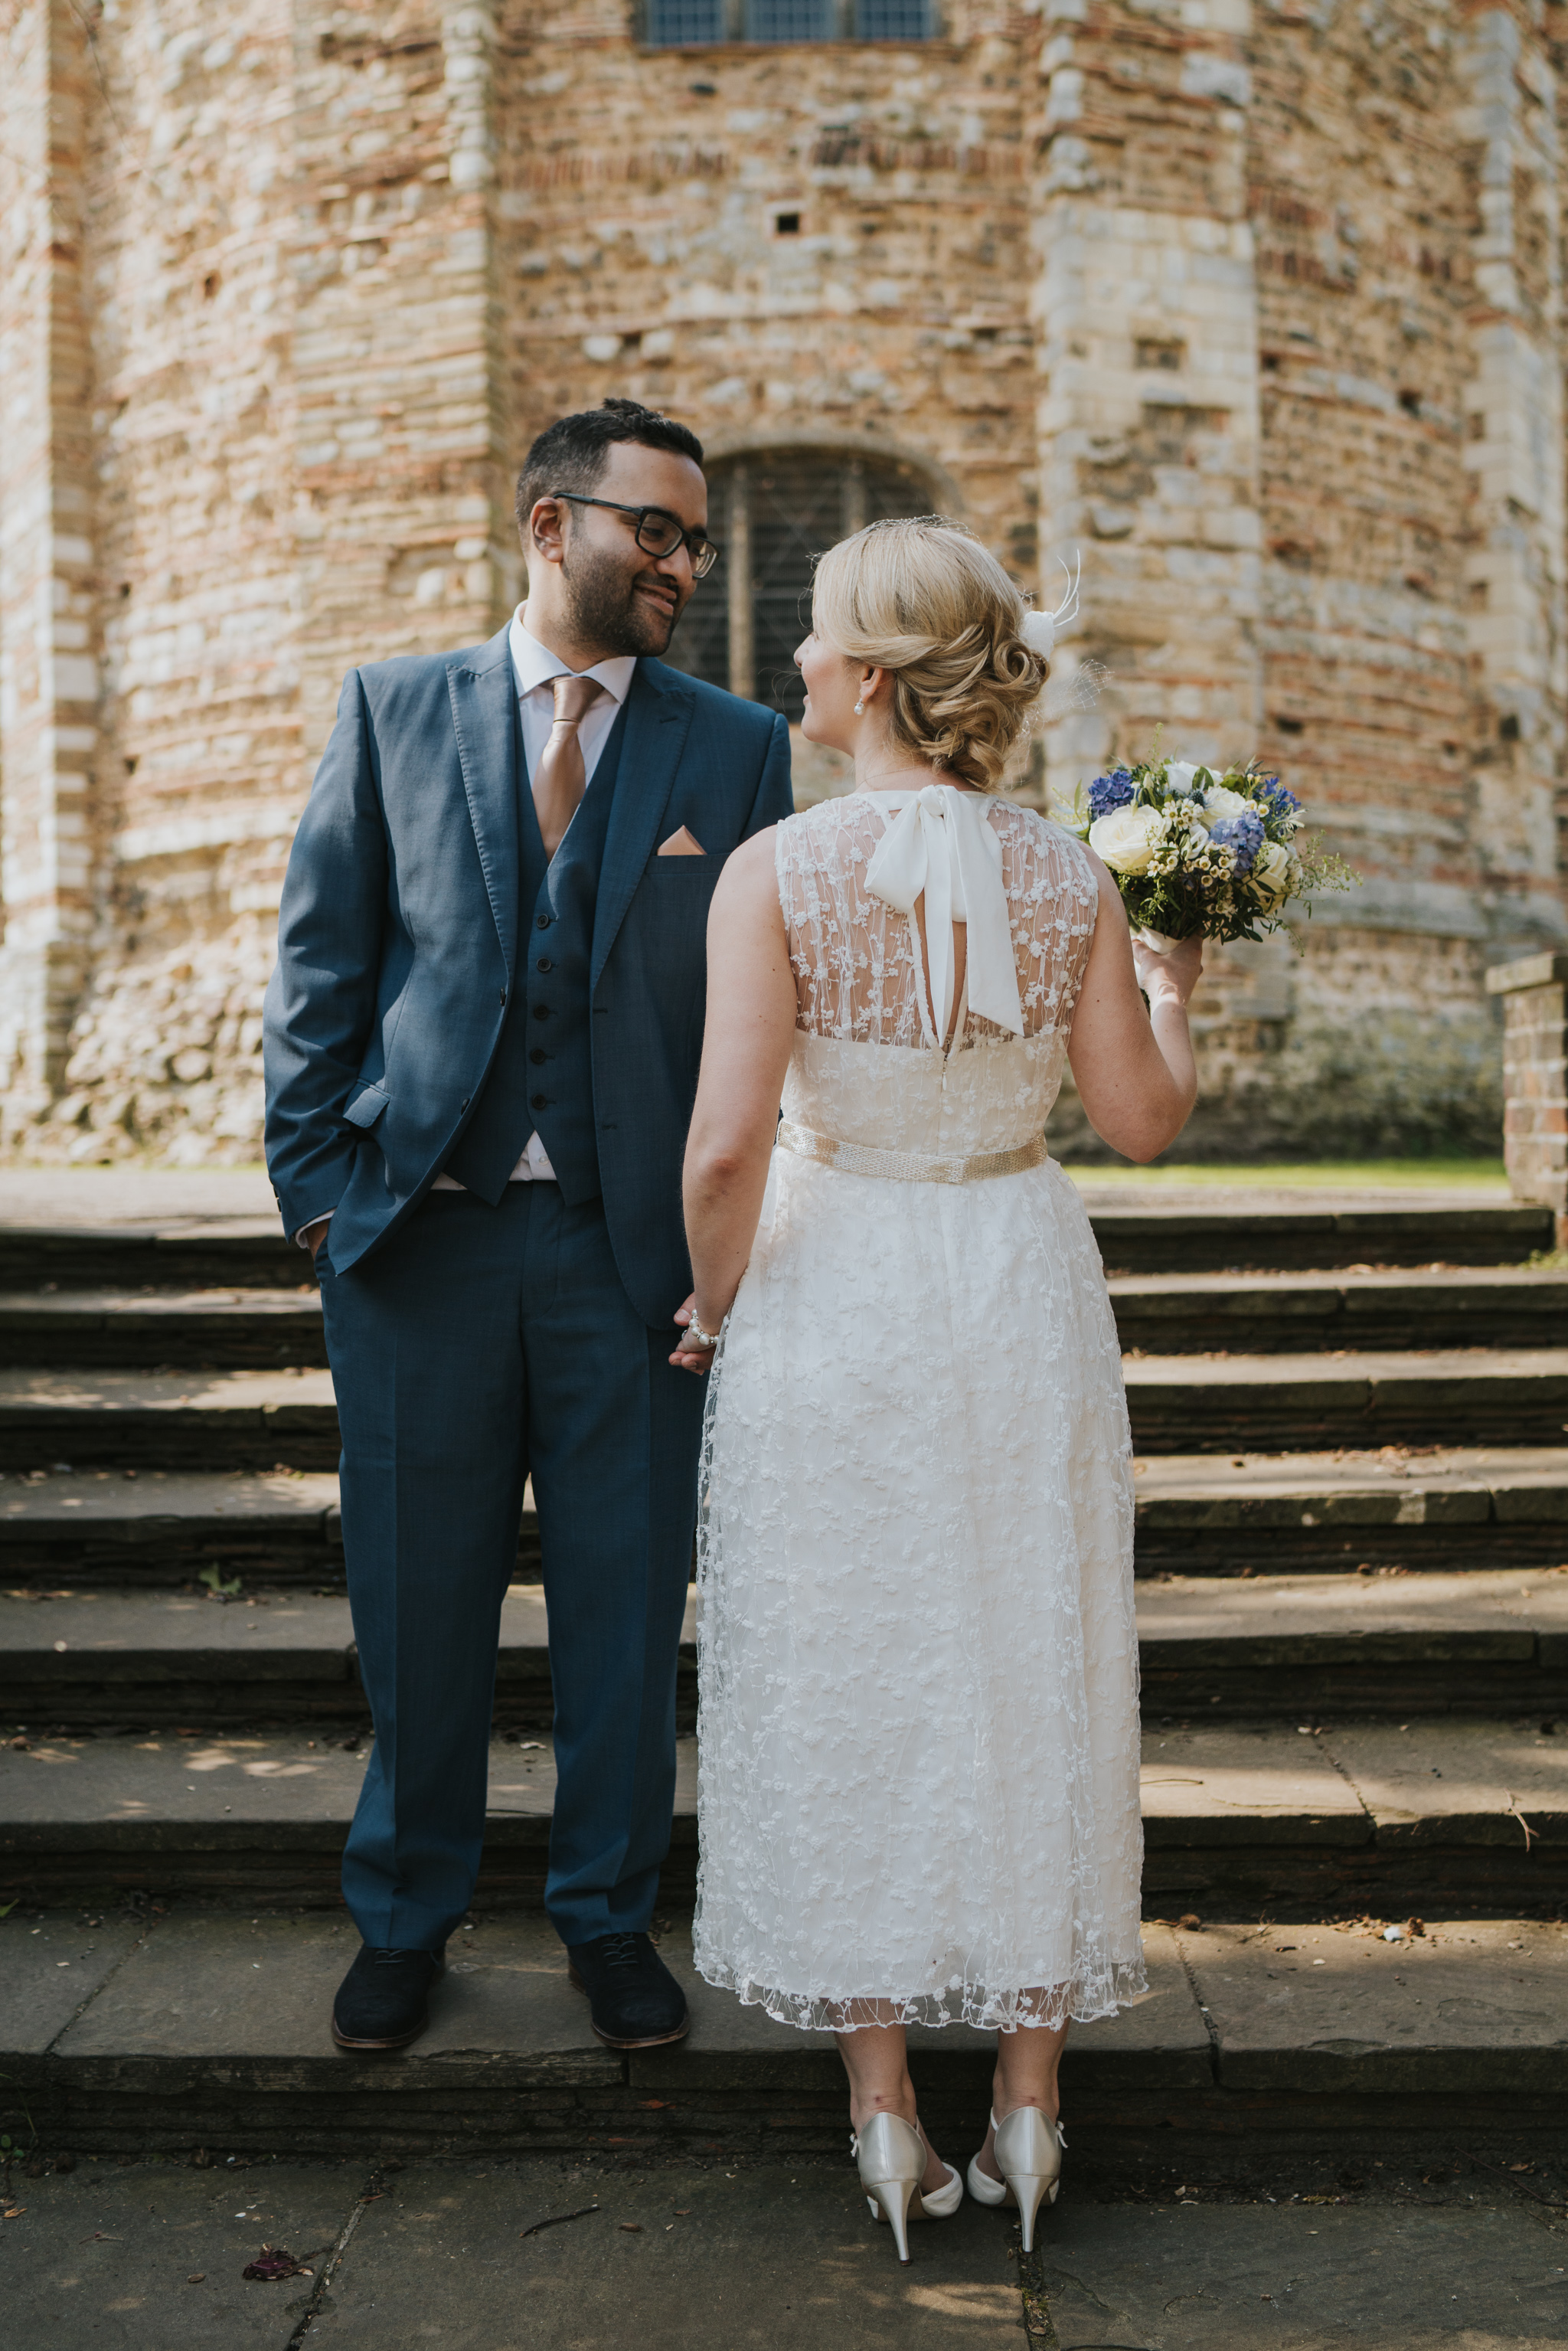 rhian-ali-colchester-essex-town-elopement-alternative-wedding-photographer-grace-elizabeth-essex-suffolk-norfolk-devon (77 of 81).jpg